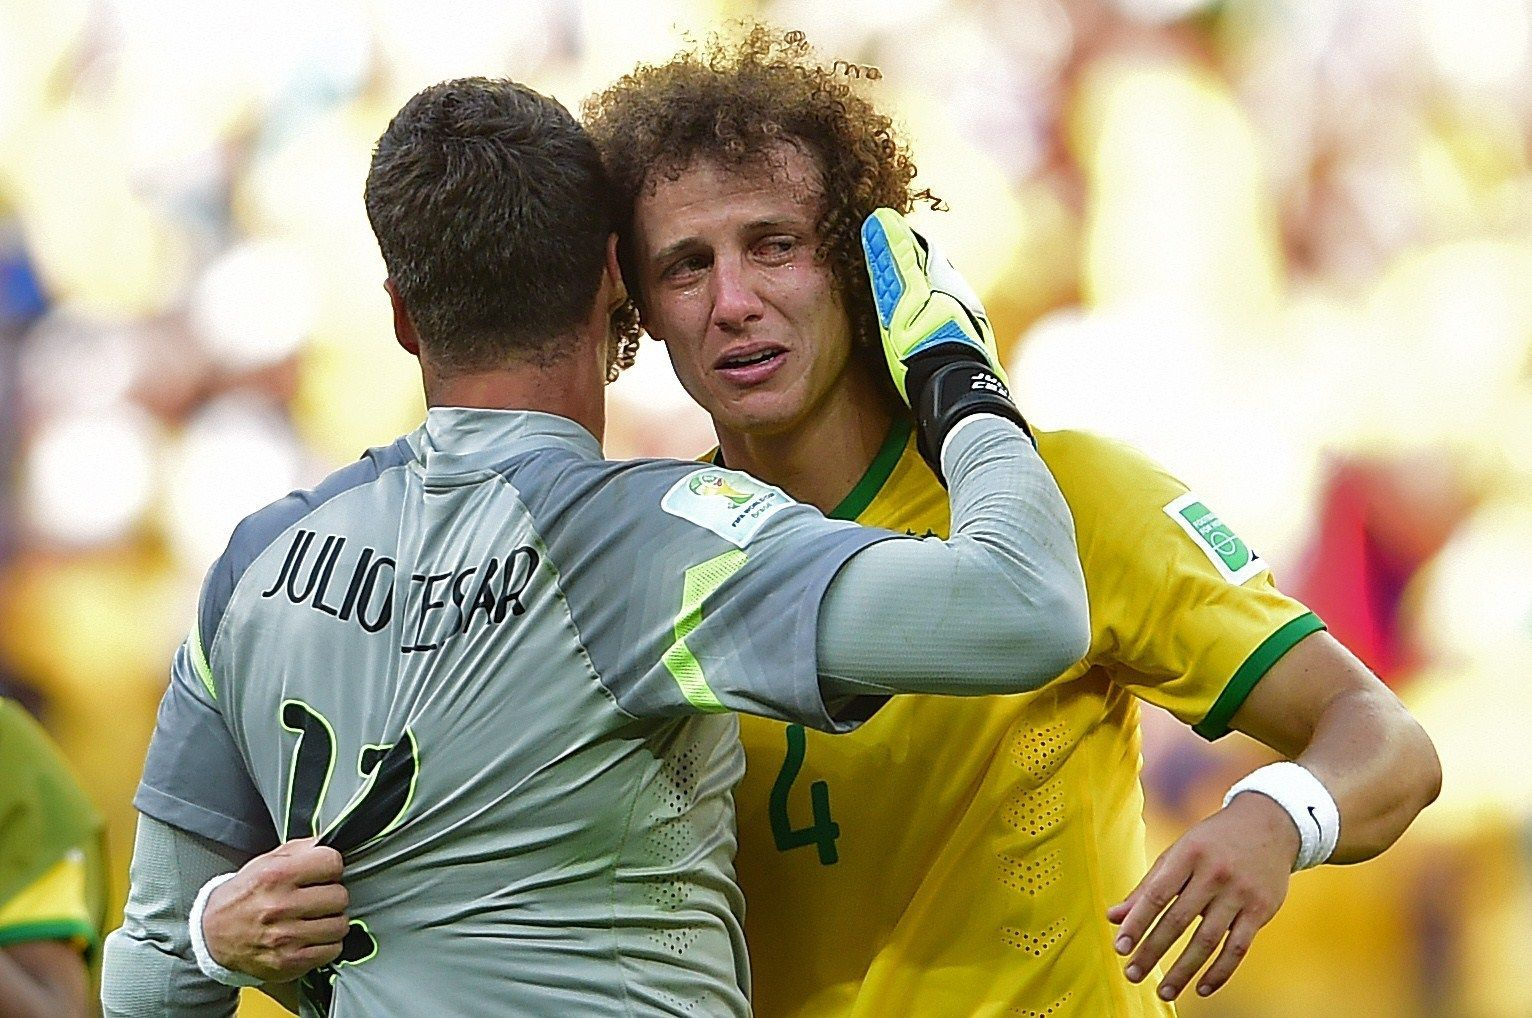 There is crying in soccer, especially for Brazil at the World Cup ...